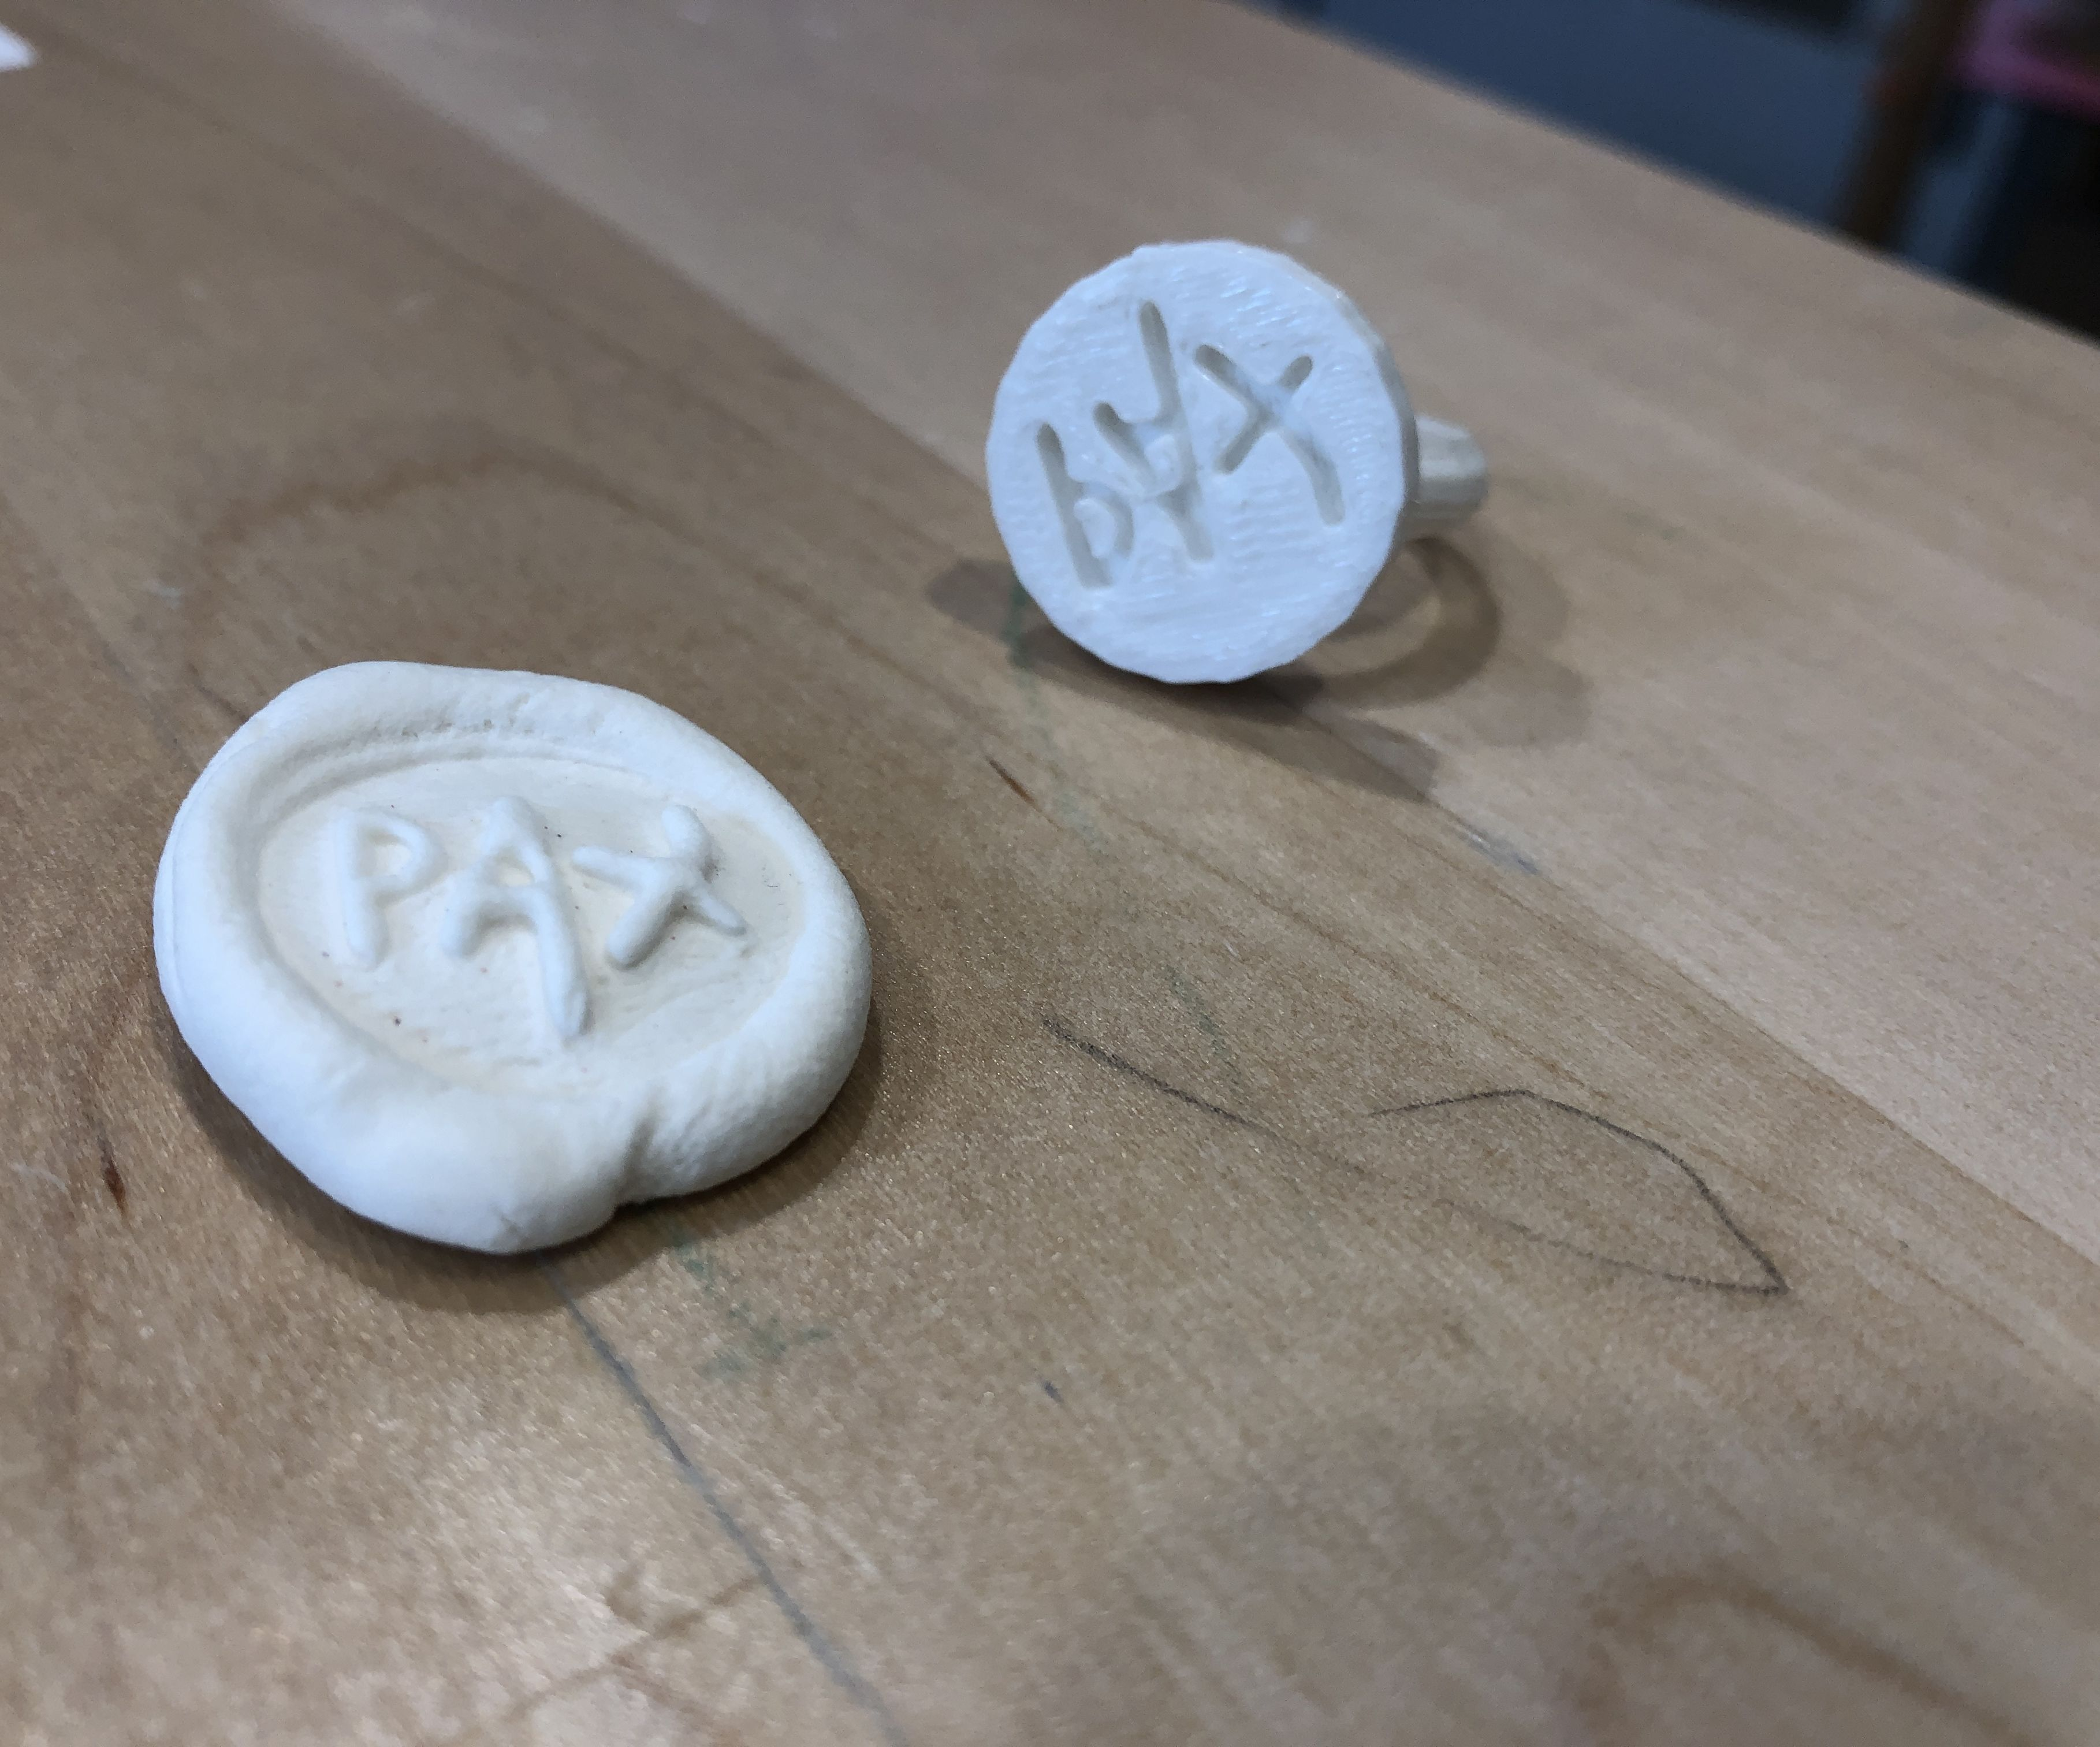 Create Your Own Latin Signet Ring With Tinkercad